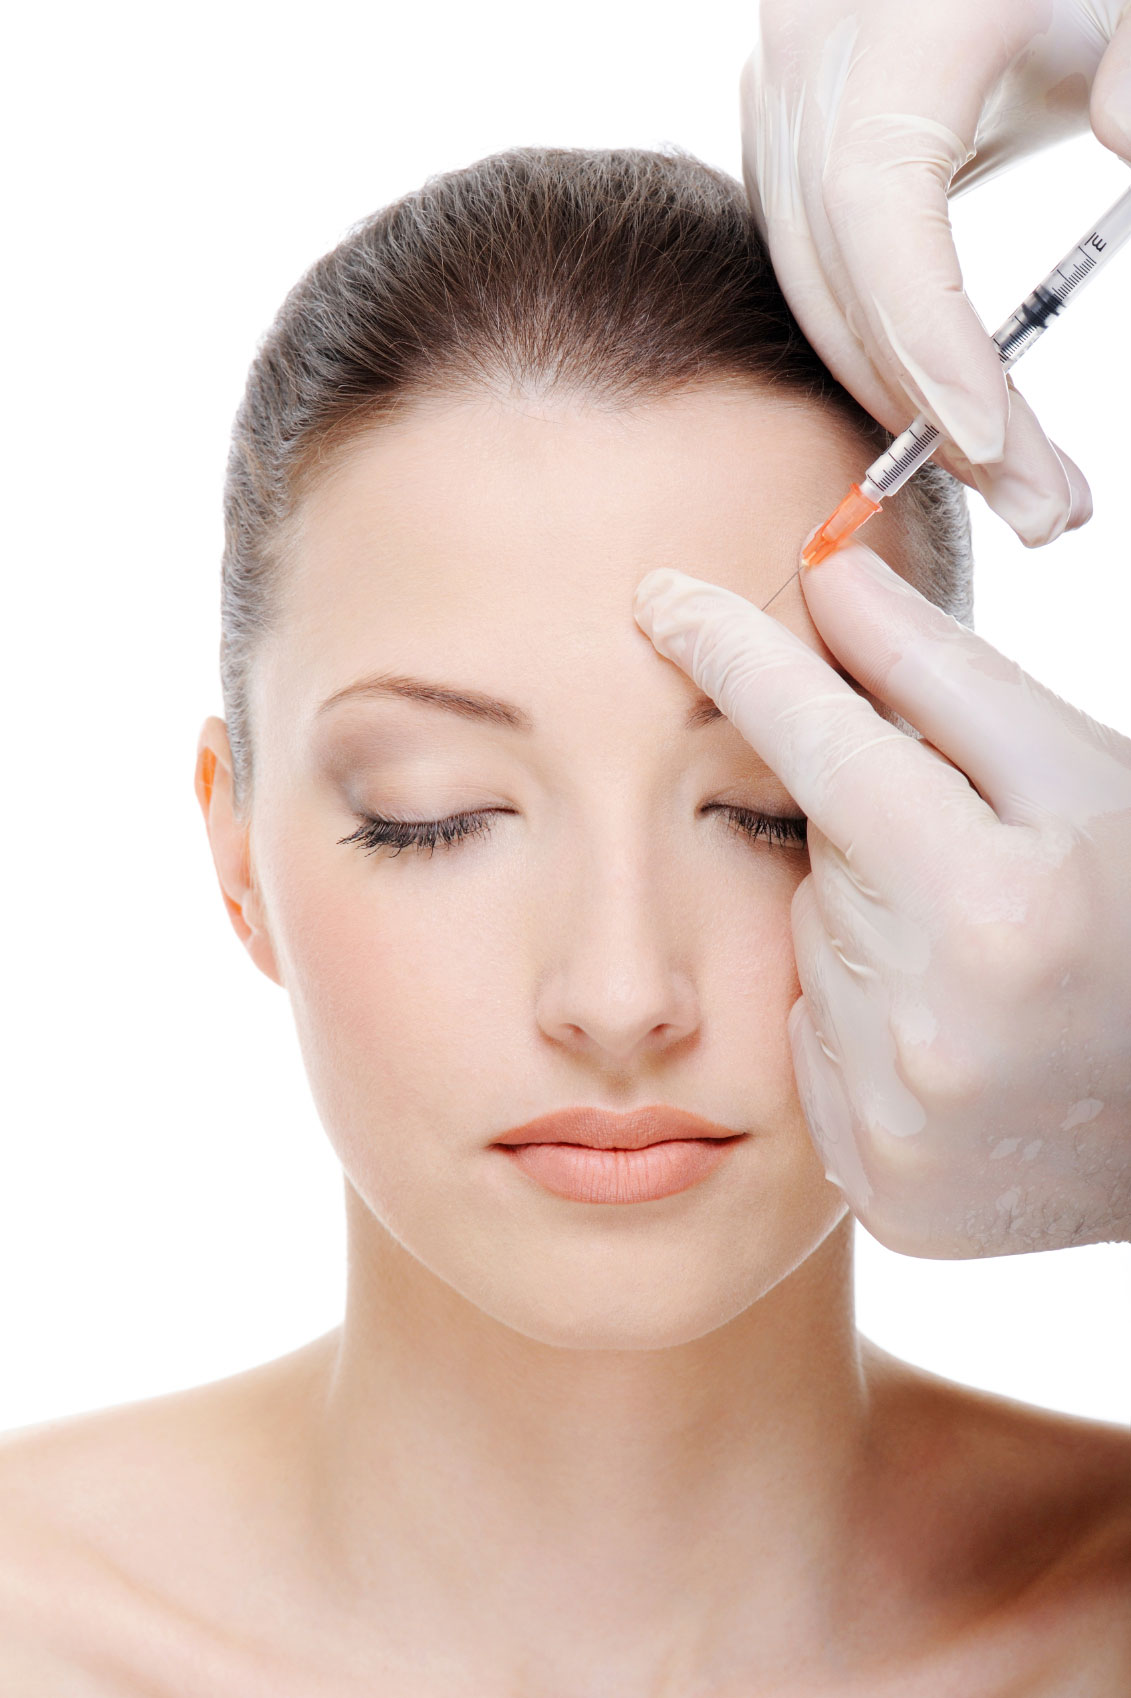 Cosmetic injections botox fillers dr. crabtree